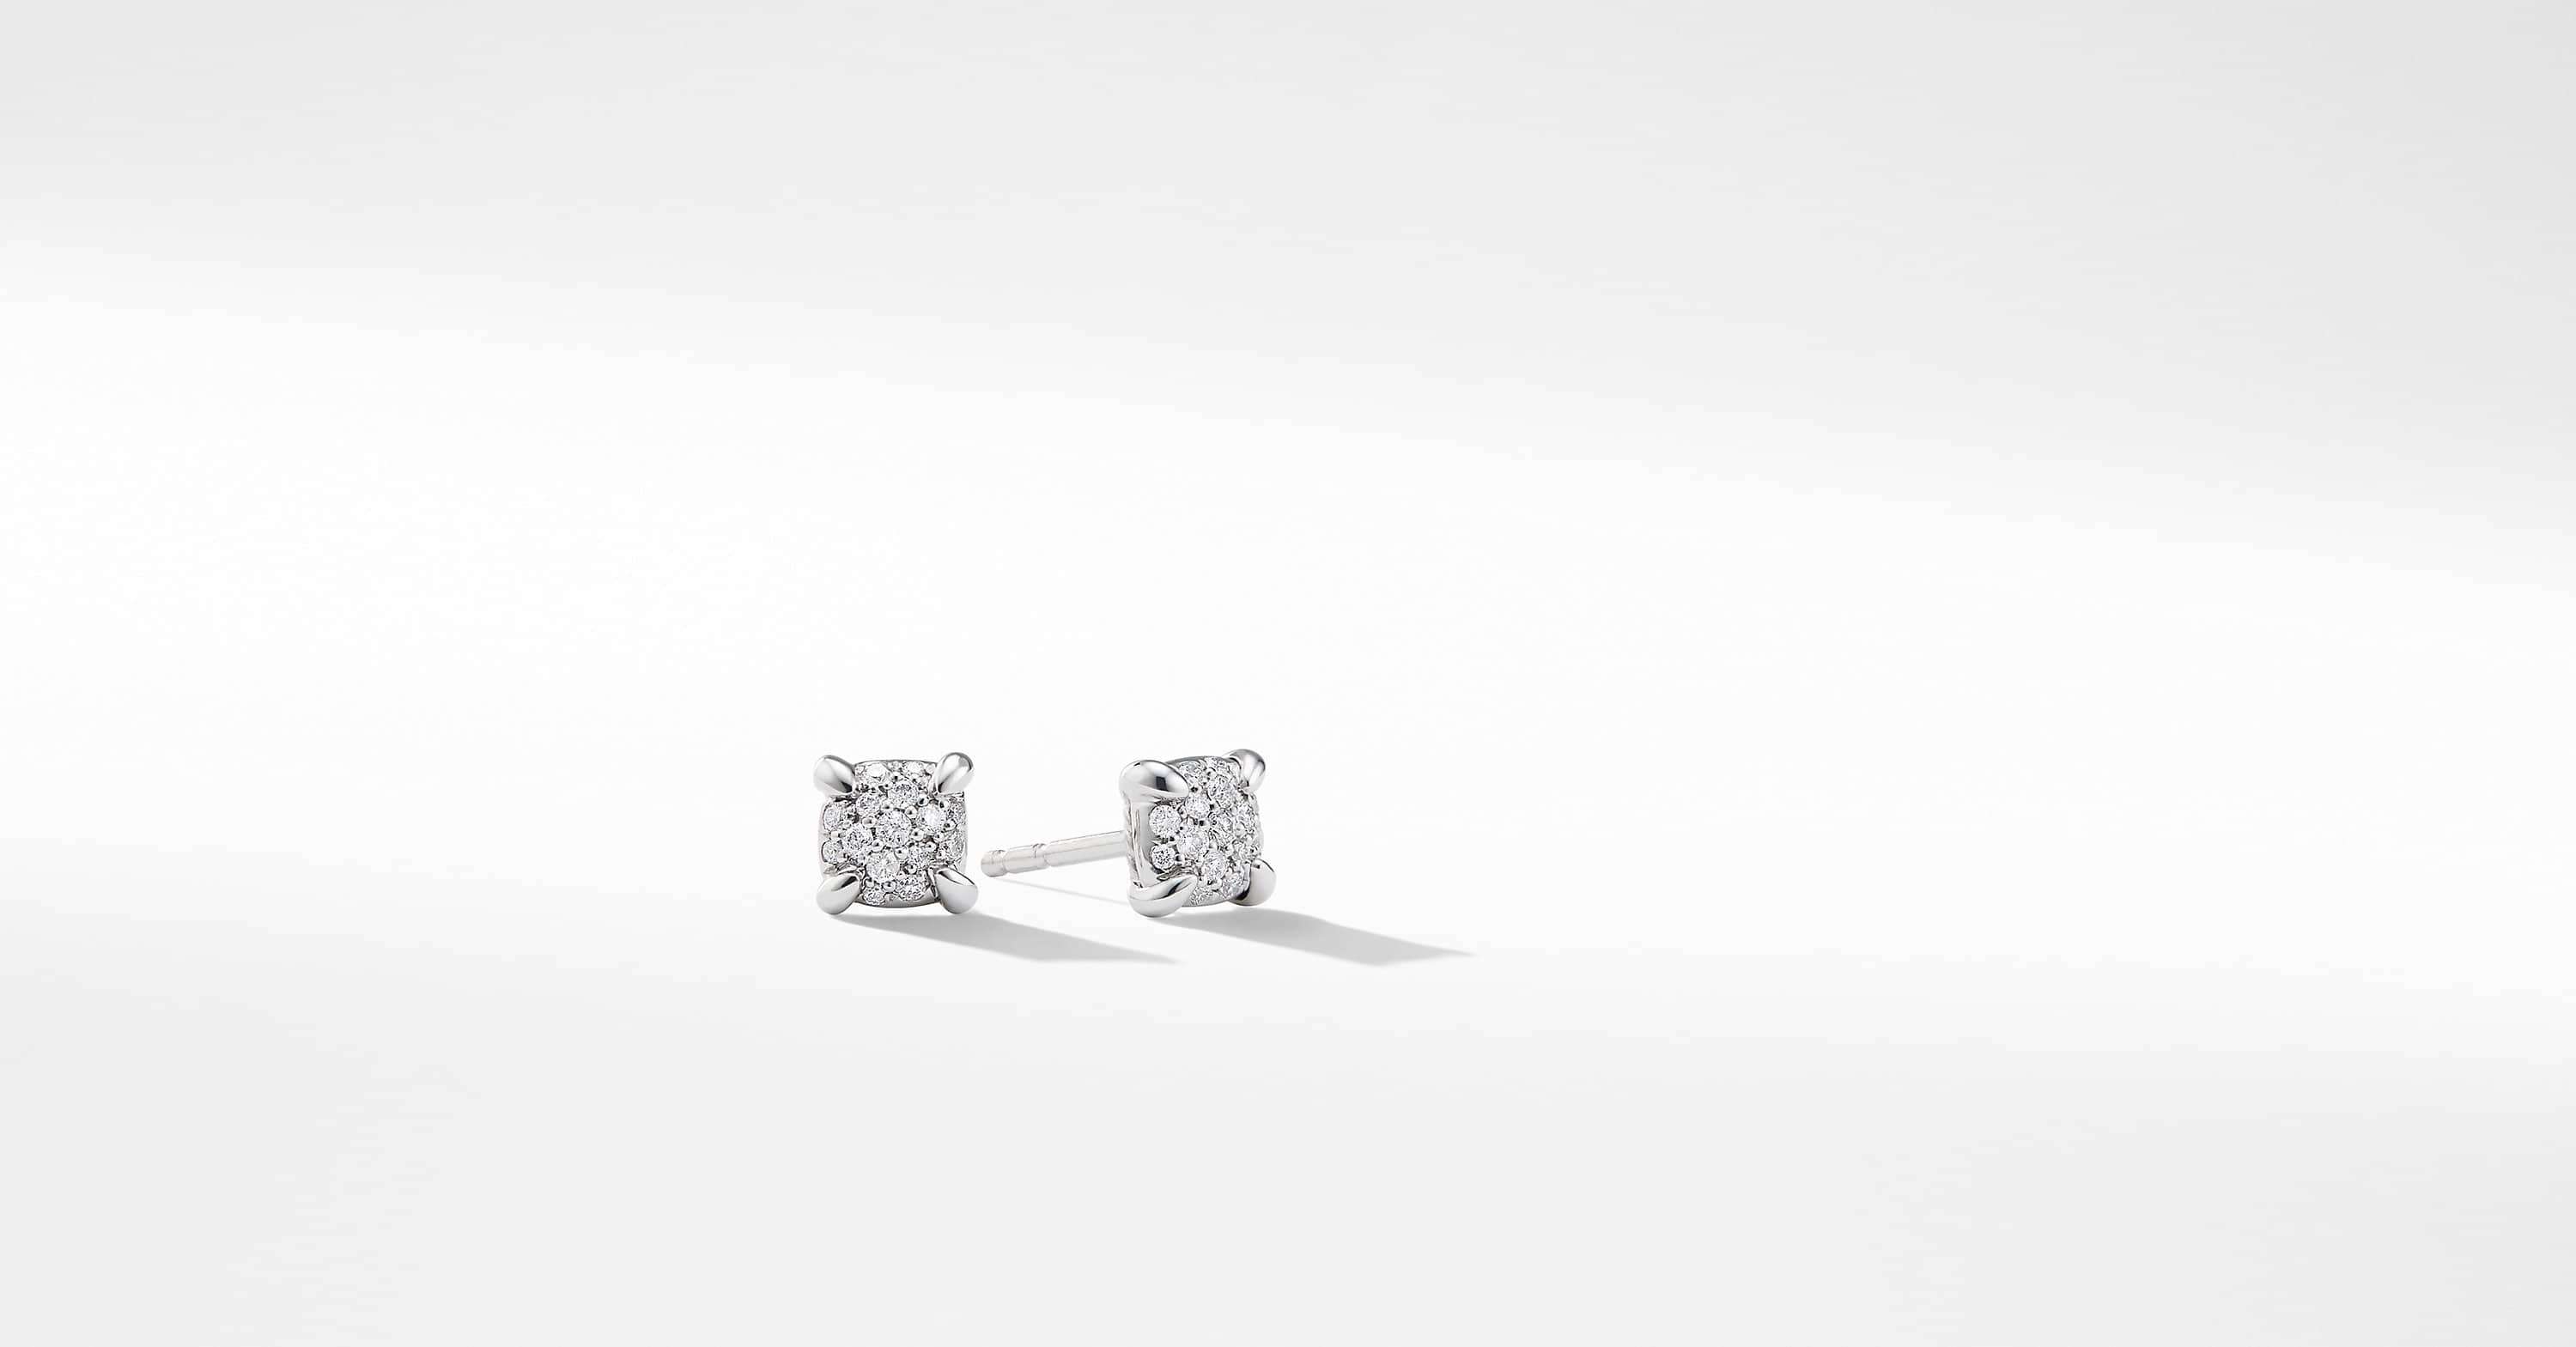 Precious Chatelaine Stud Earrings with Diamonds in 18K White Gold